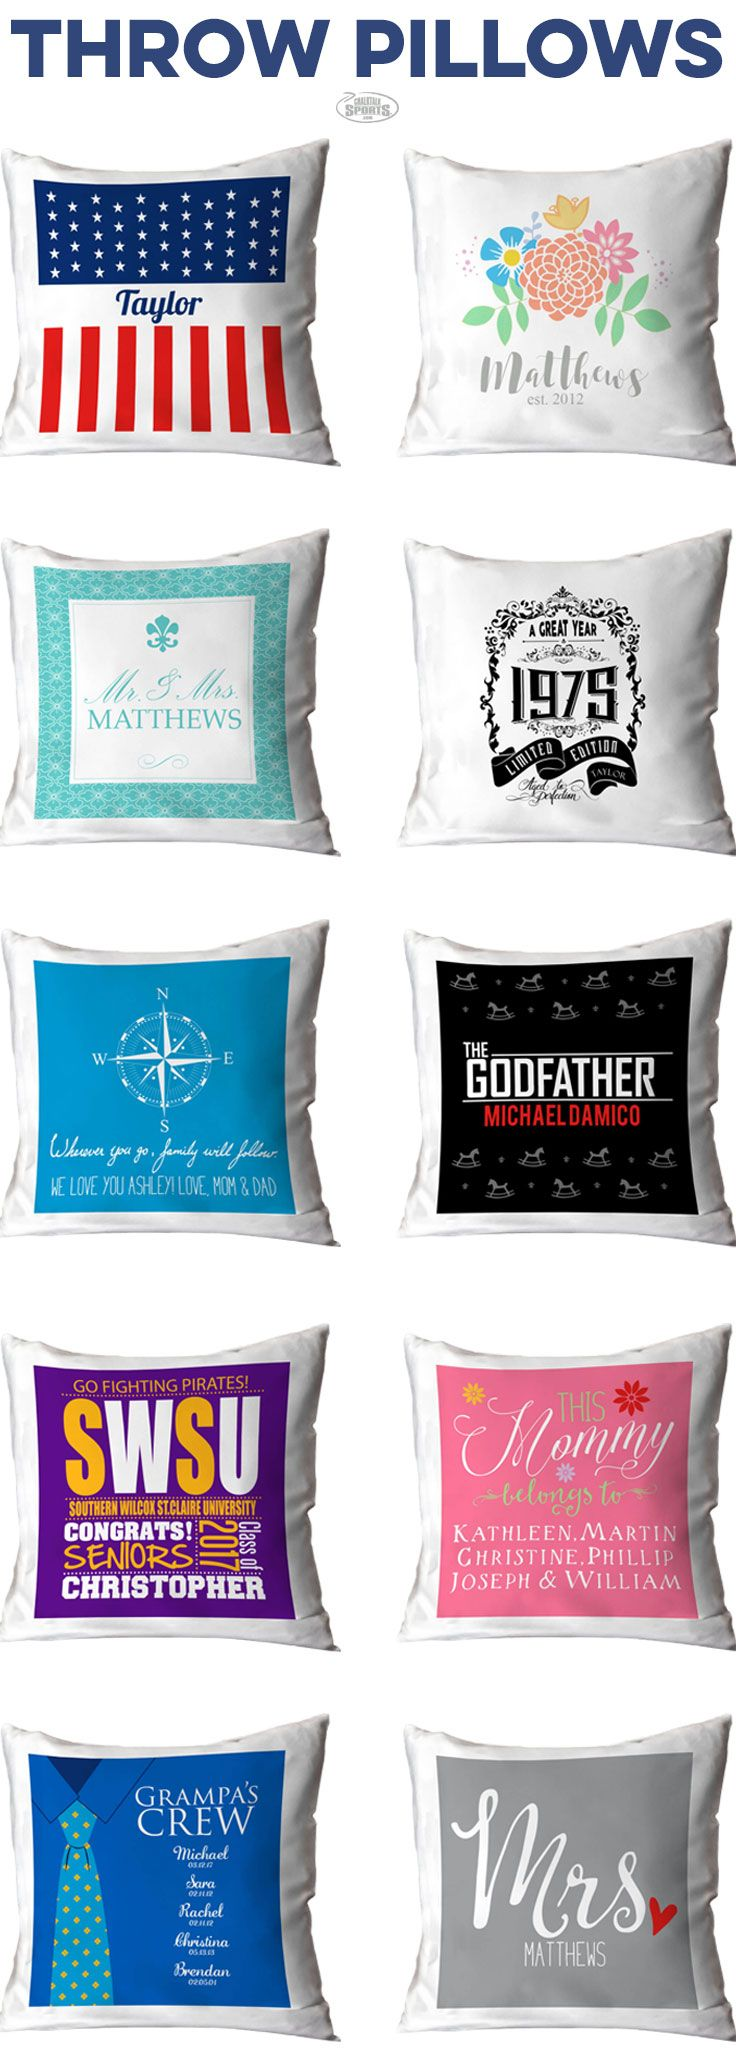 looking for that special something to bring a room together? These Throw Pillows are perfect! They come in a variety of designs and colors. Made for special occasions or people. We Have Gifts For everyone... Mom, Dad, Brother, Sister, Grandpa, Grandma, Aunt, and Uncle.For the special moments in life we have items for Birthdays, Weddings, Graduations, and Births. Check it out by clicking the Pin.